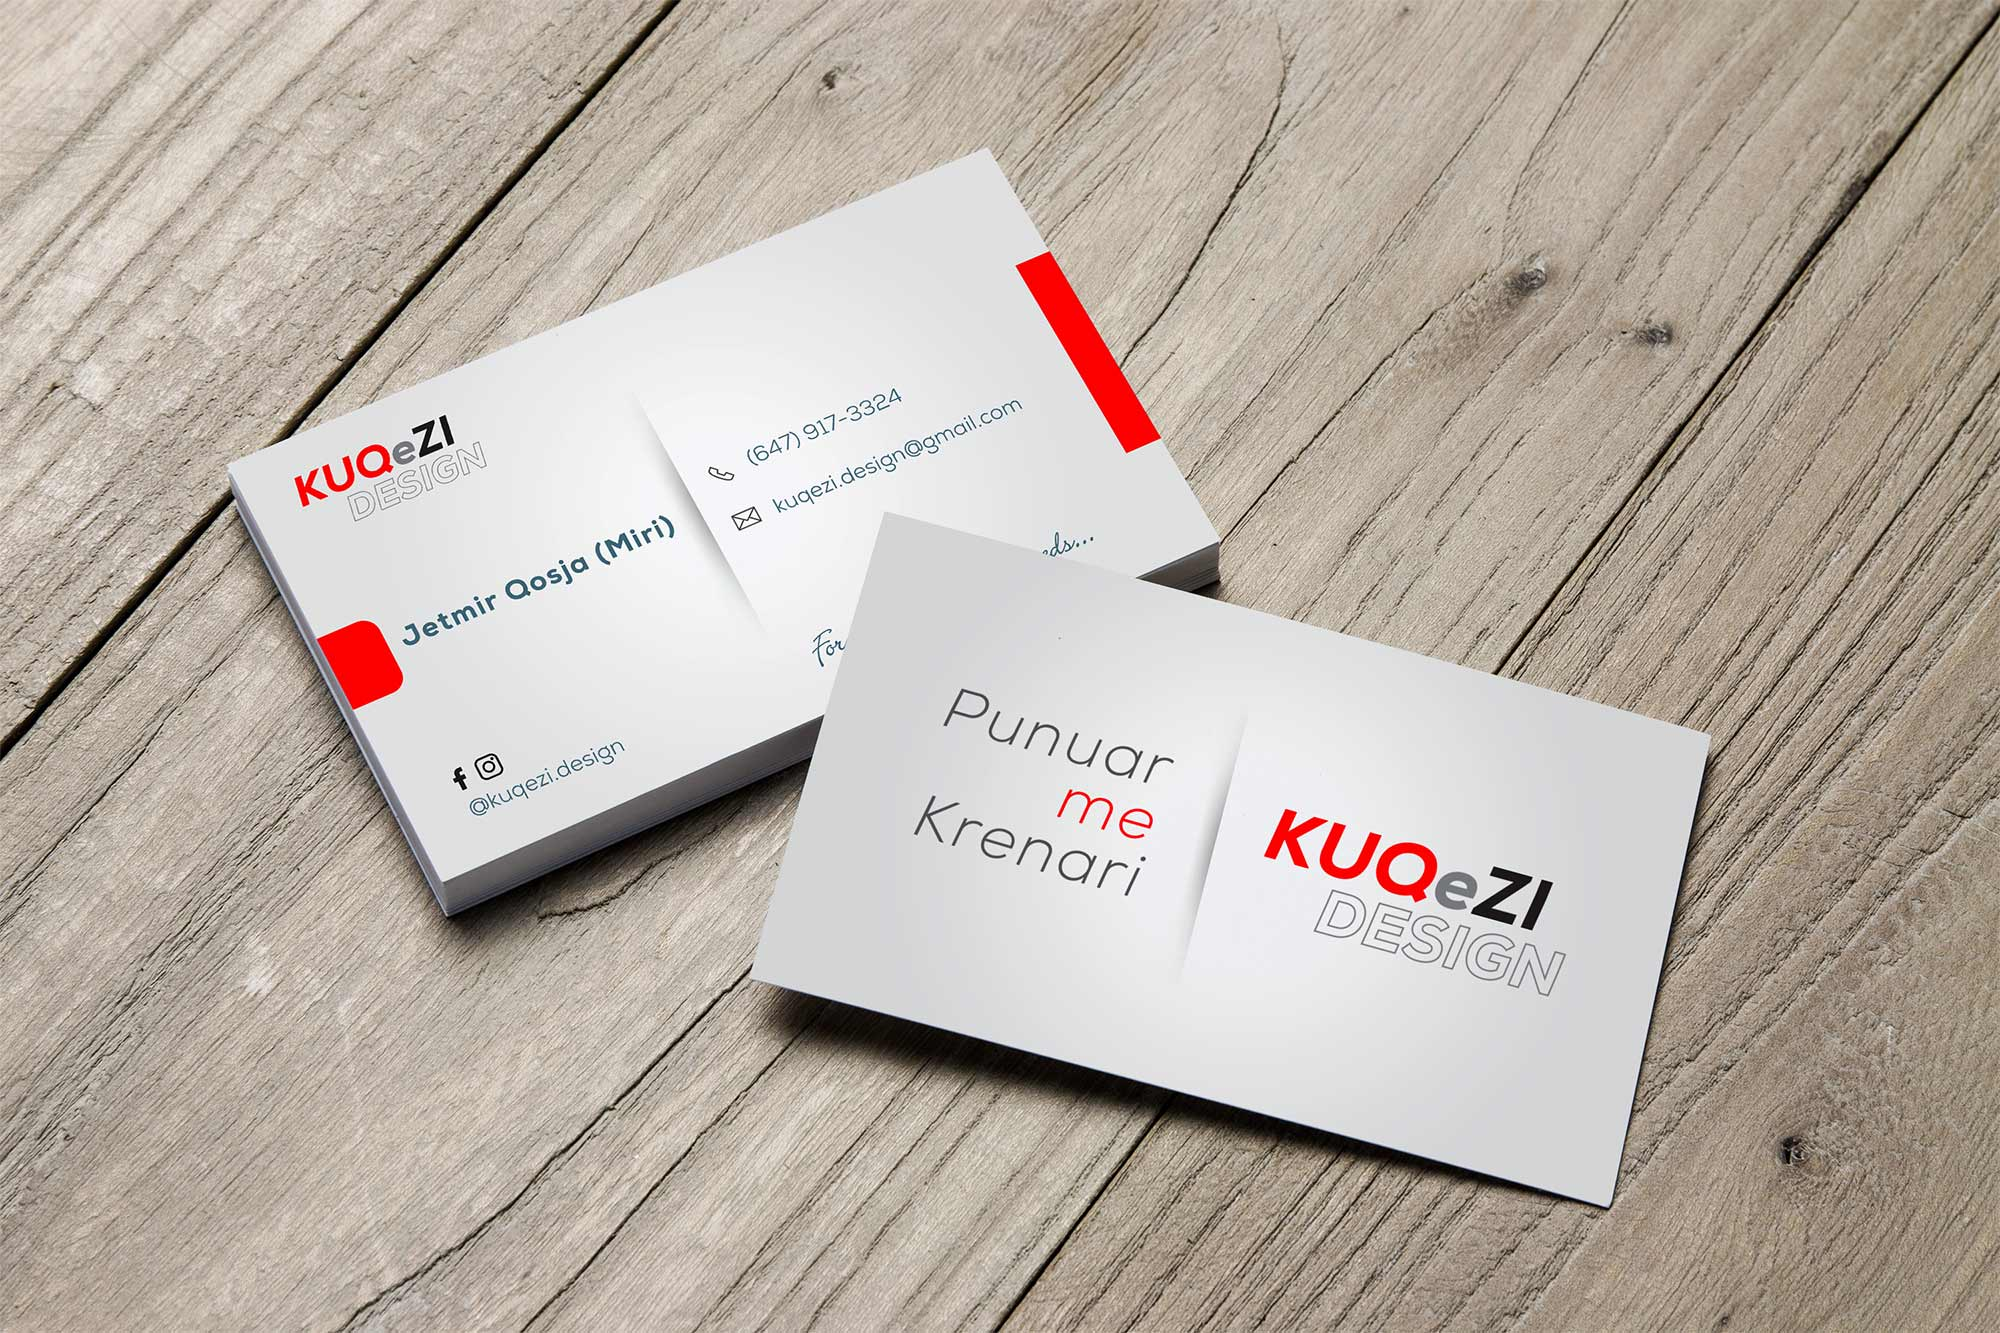 Business card designs logo print kuq e zi design business cards reheart Images